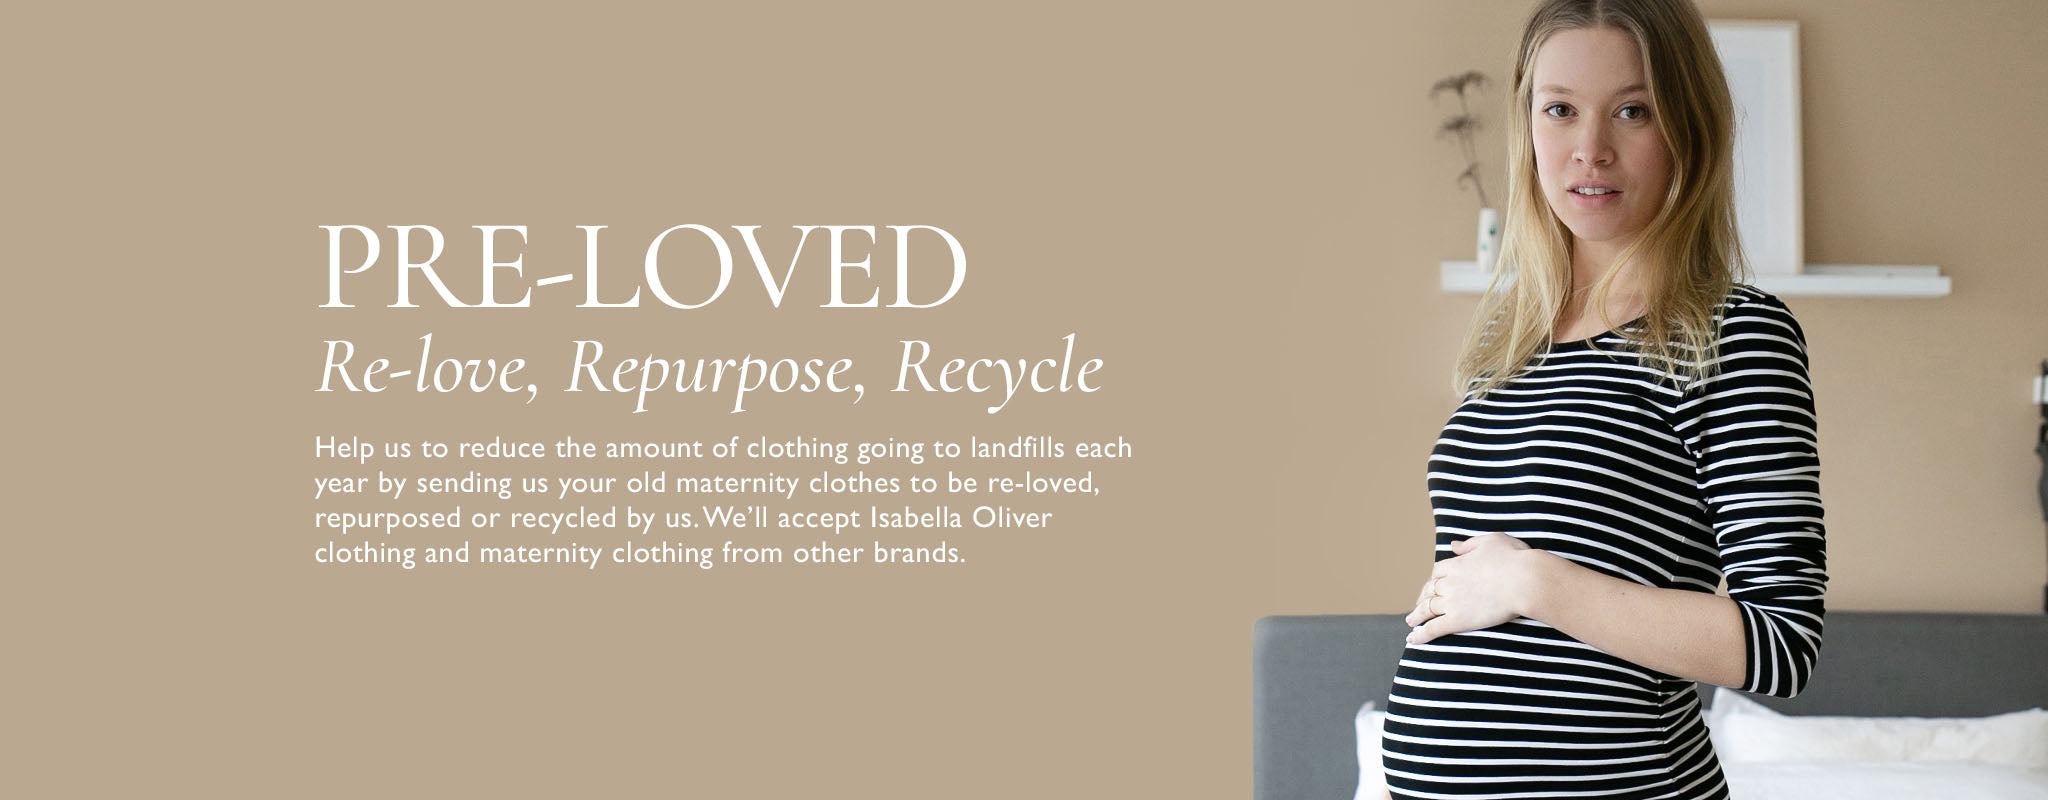 Re-love, Repurpose, Recycle